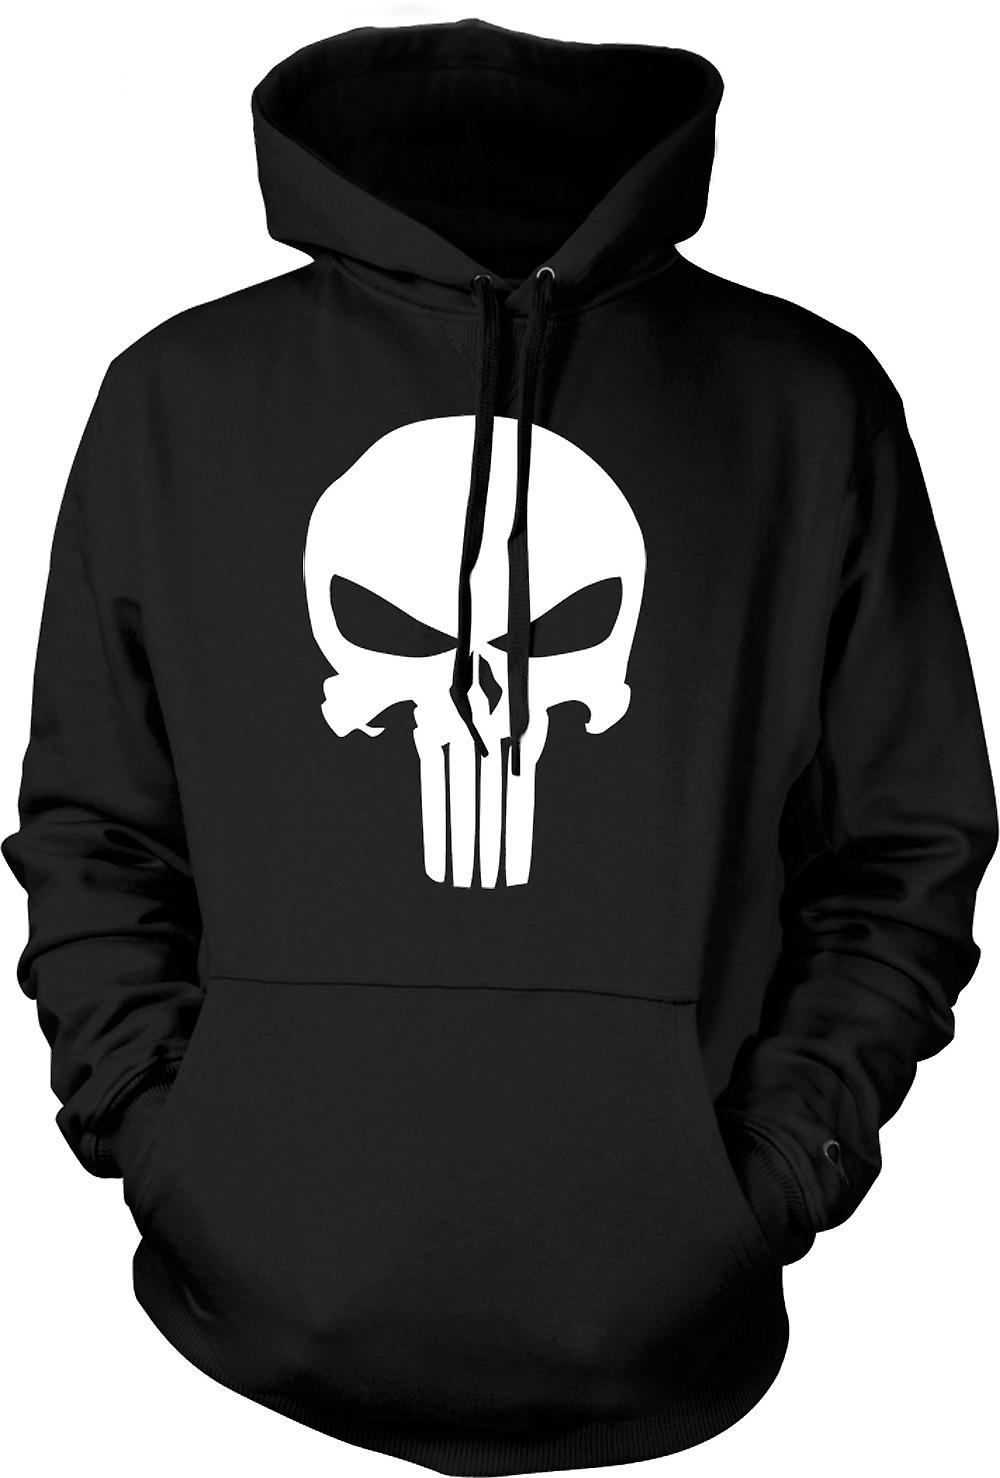 Mens Hoodie - The Punisher Logo - Vigilante